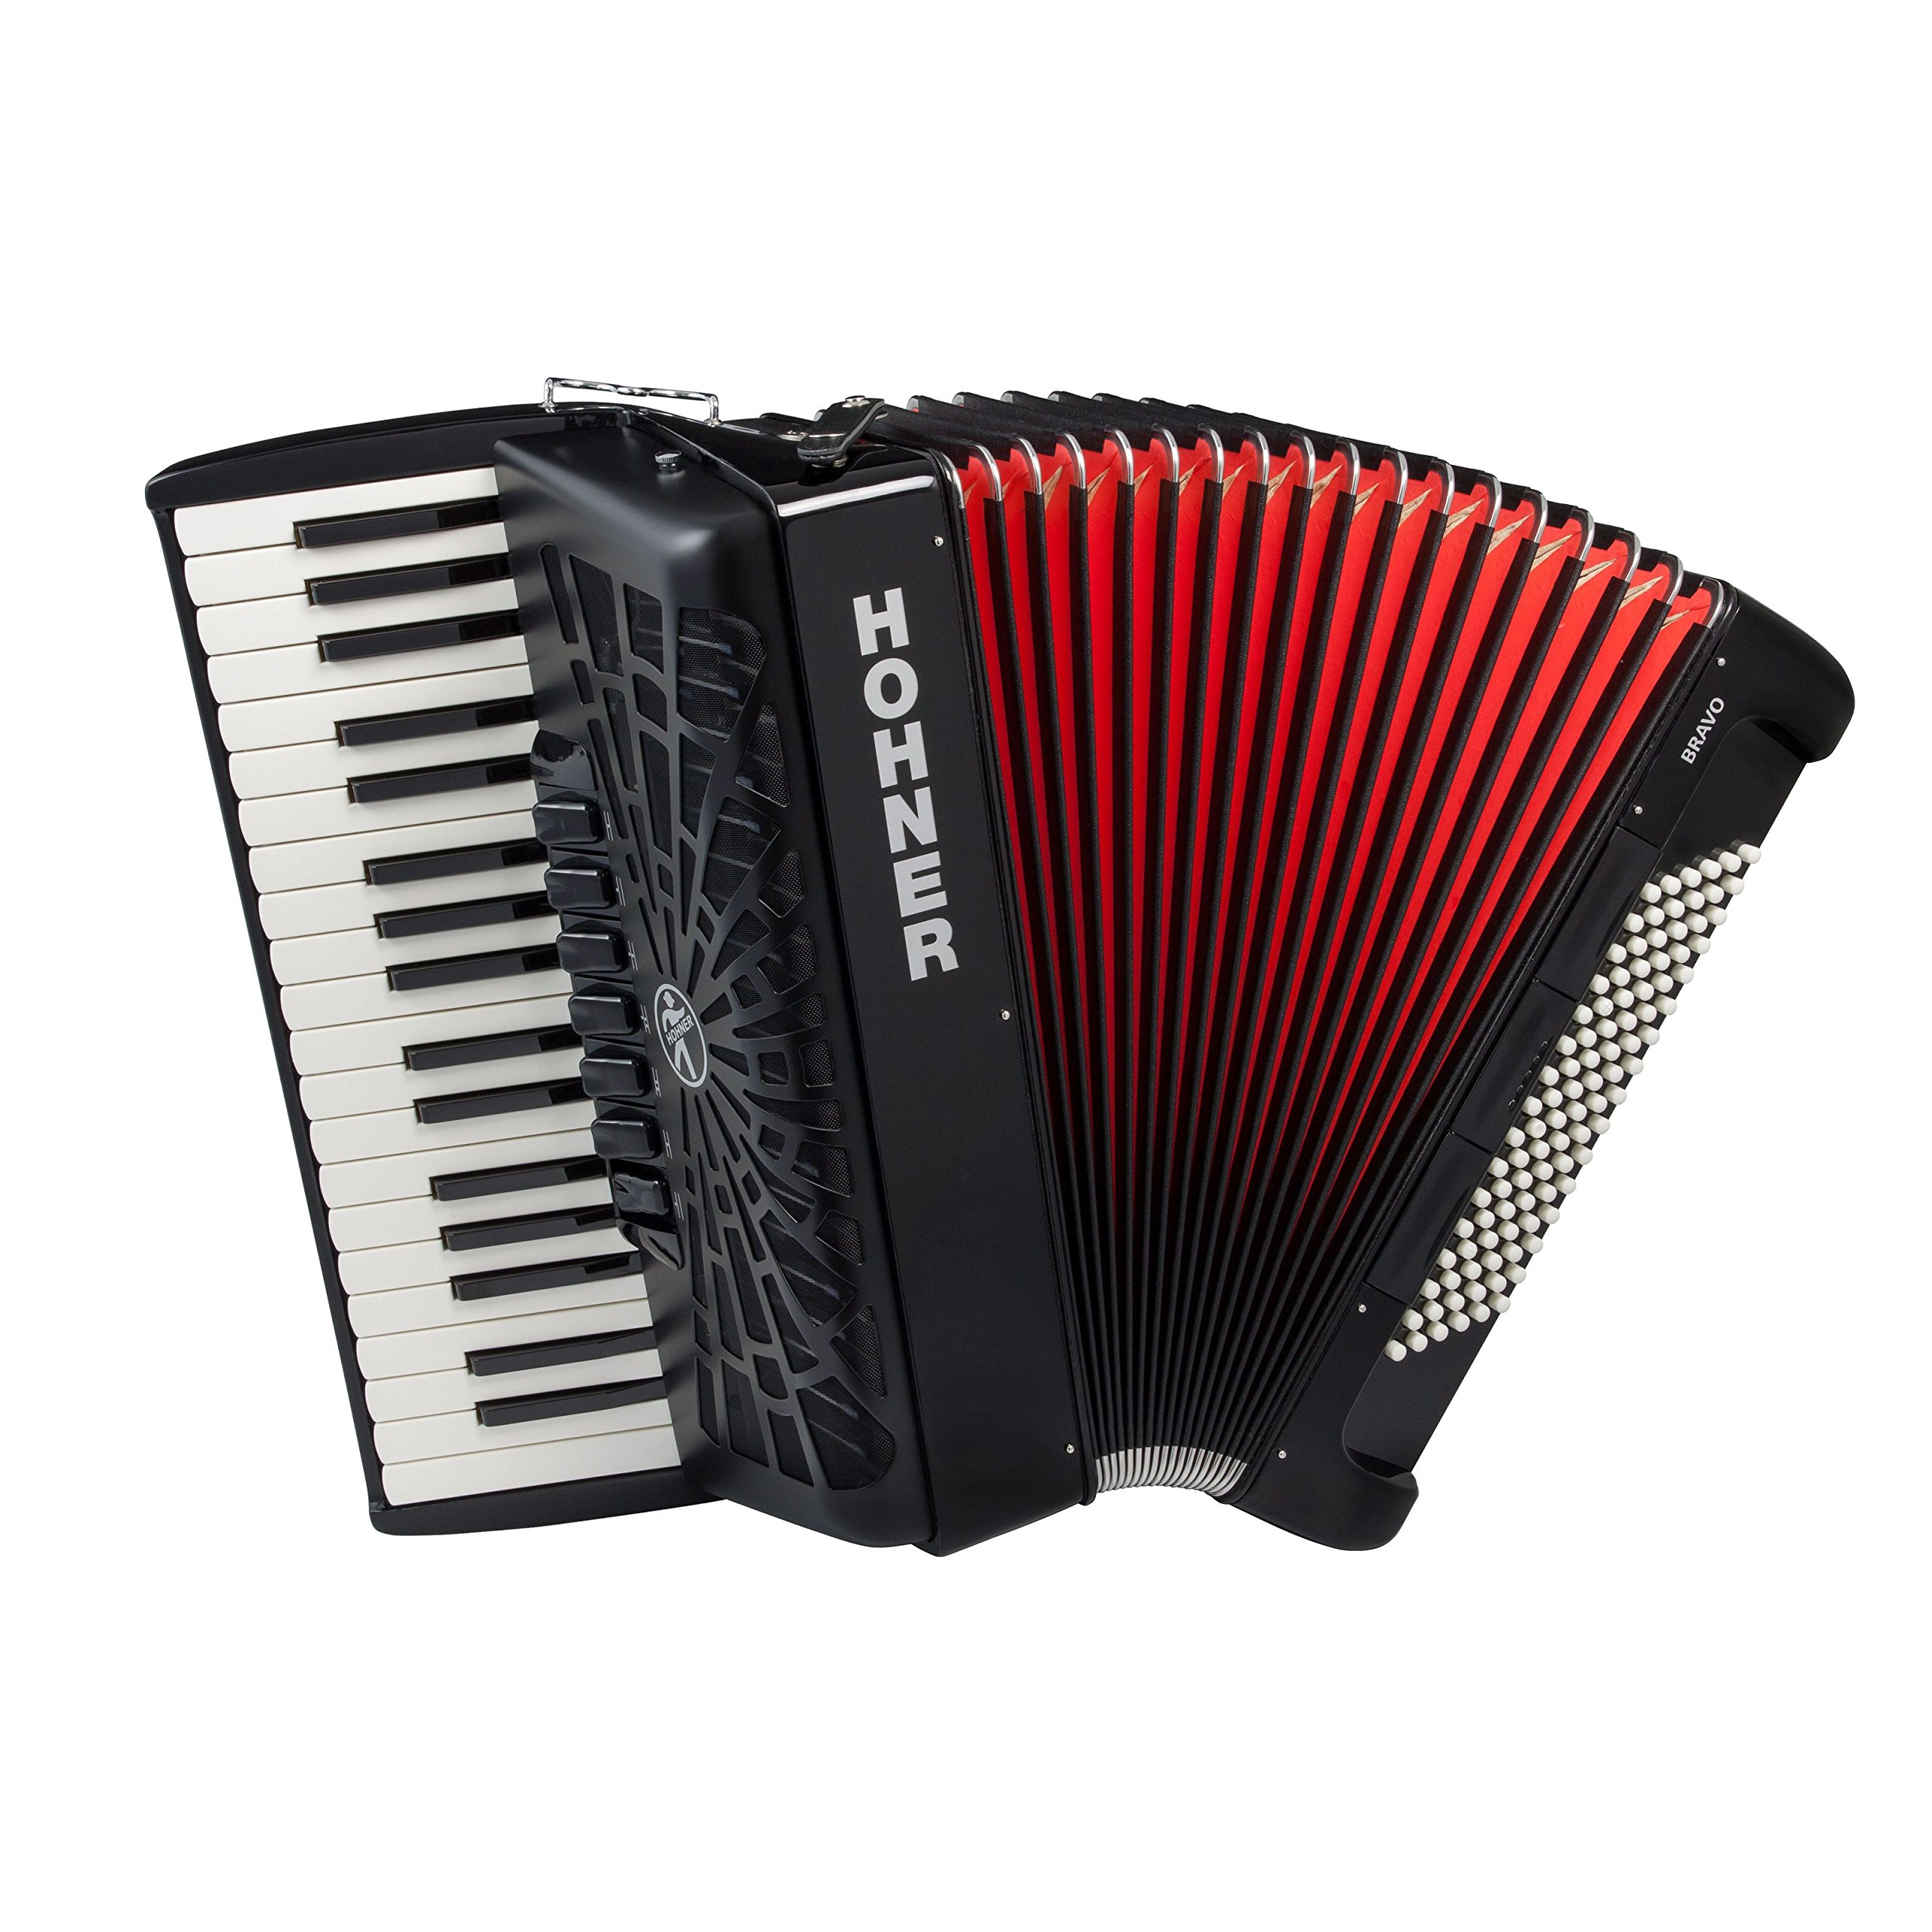 Hohner A16721S Bravo Line Facelift III -96 Bass Chromatic Piano Accordion with Gig Bag, Black by Hohner Accordions